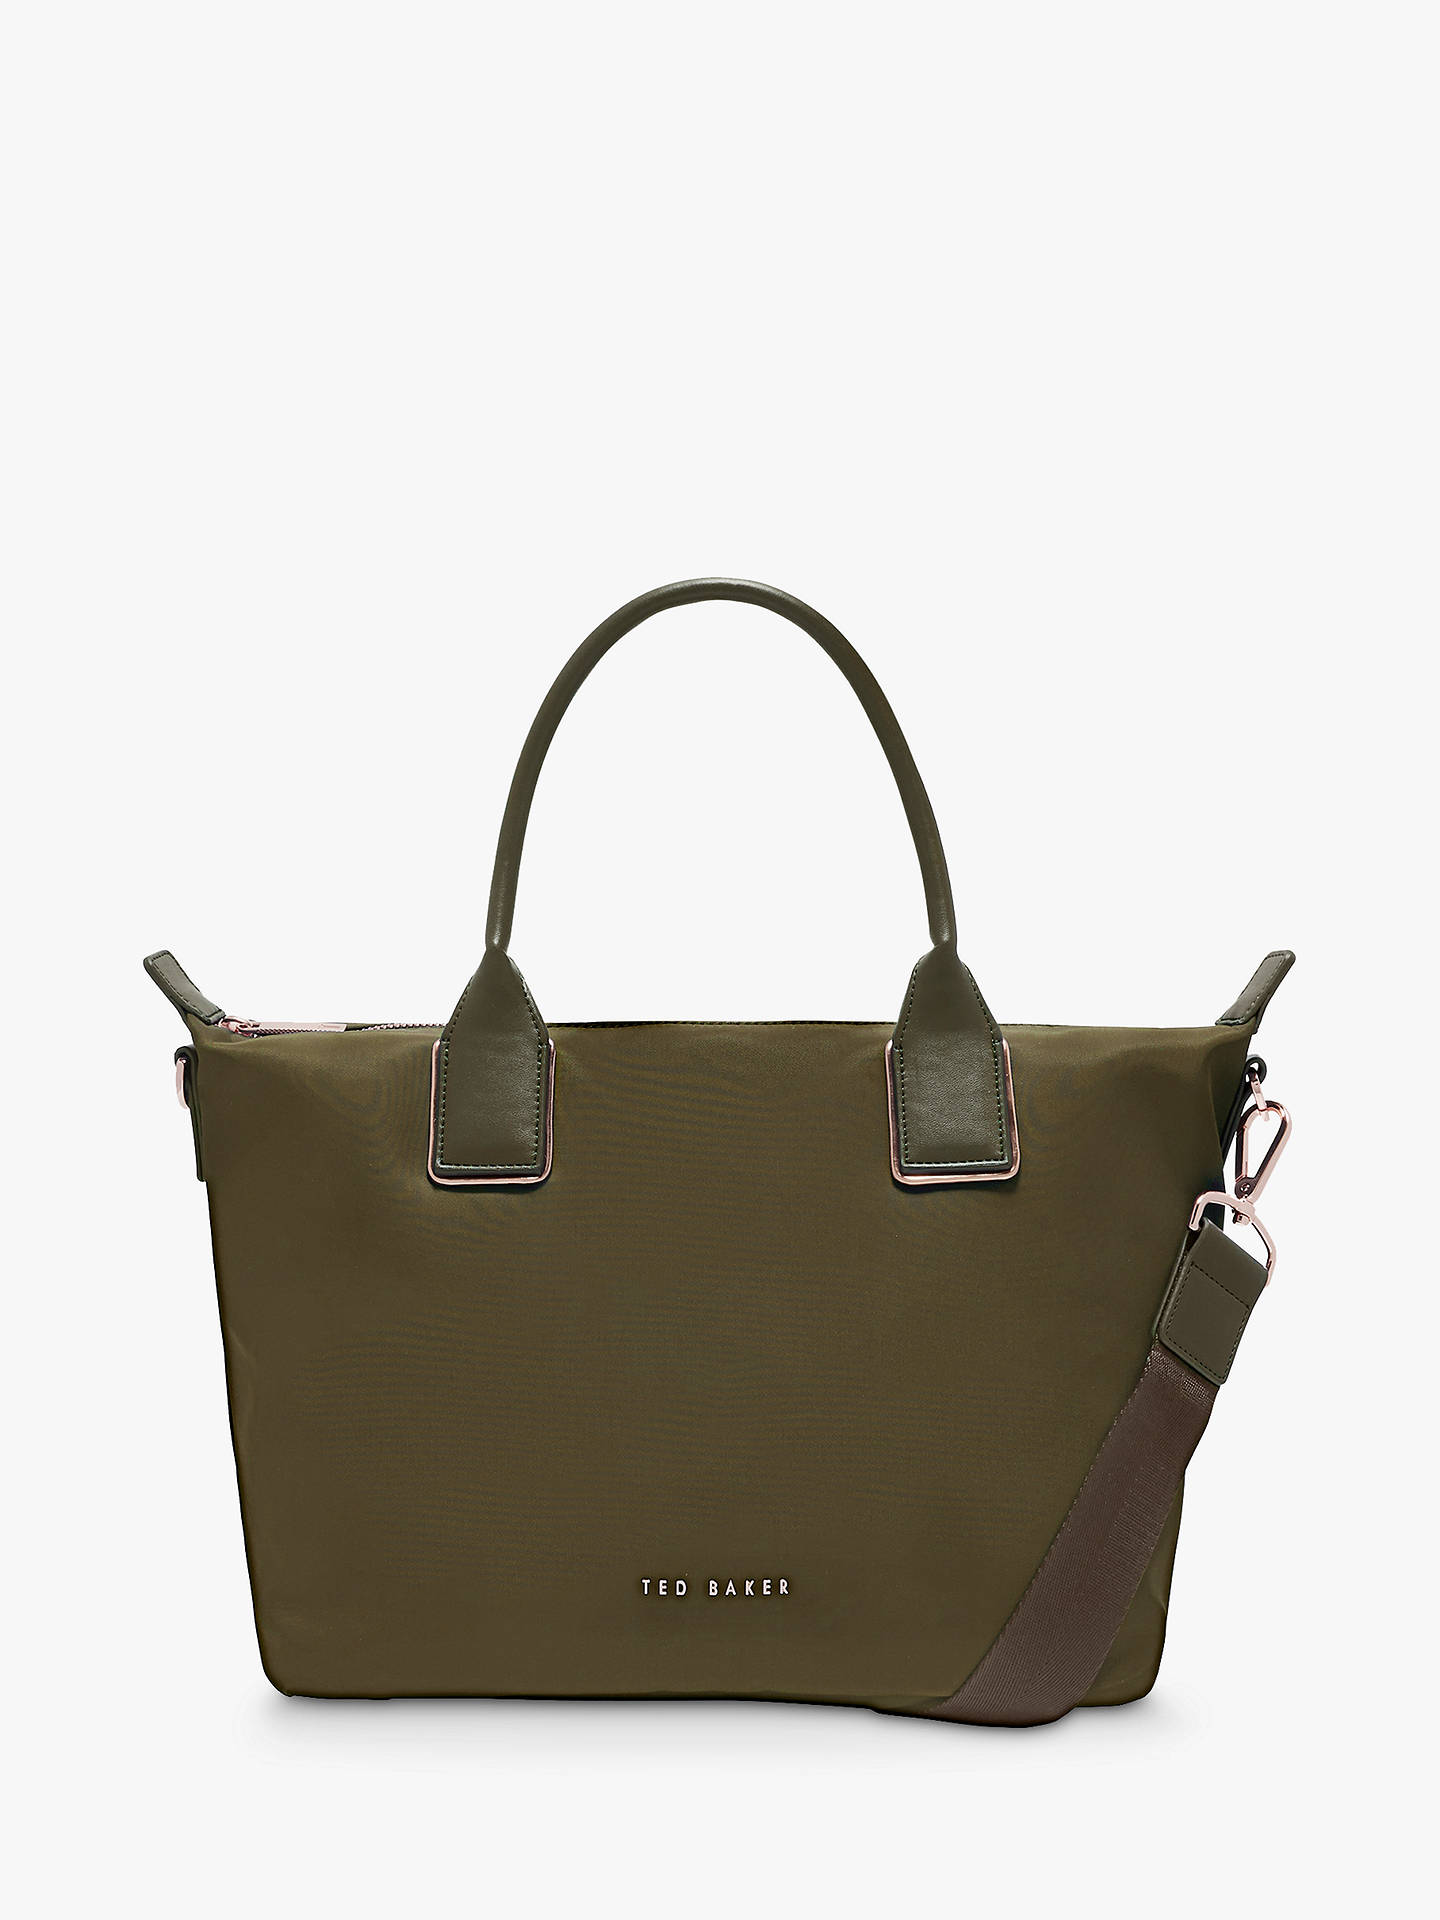 c0873b3eff5a2 Buy Ted Baker Jicksy Small Tote Bag